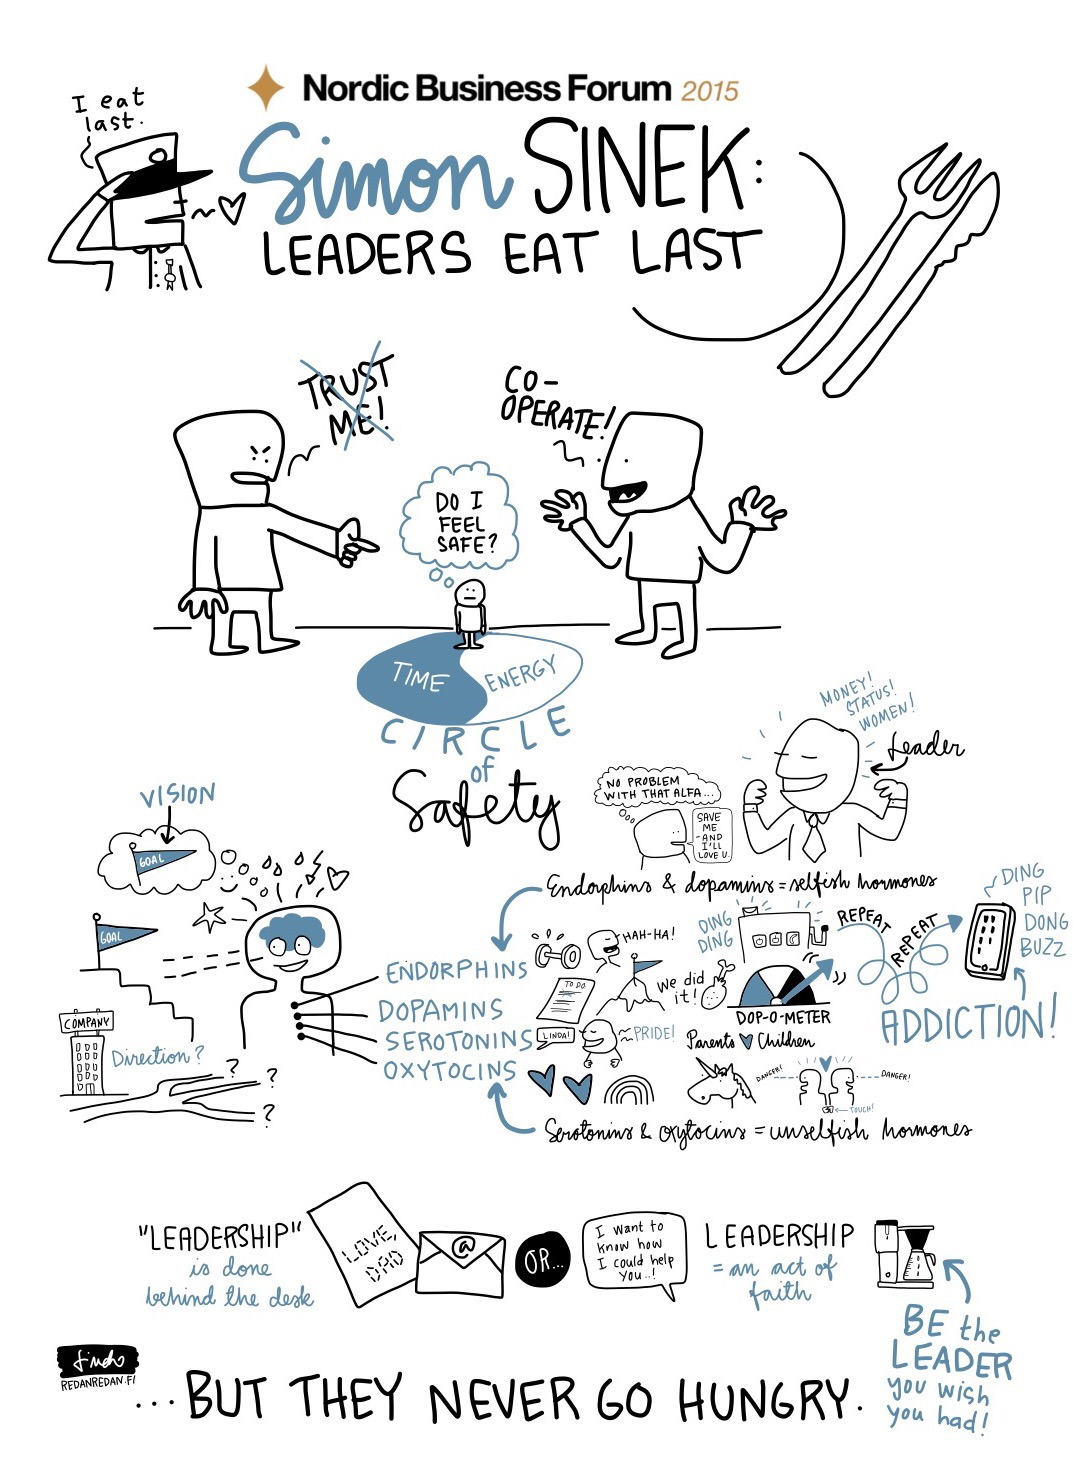 Simon Sinek - Leaders Eat Last